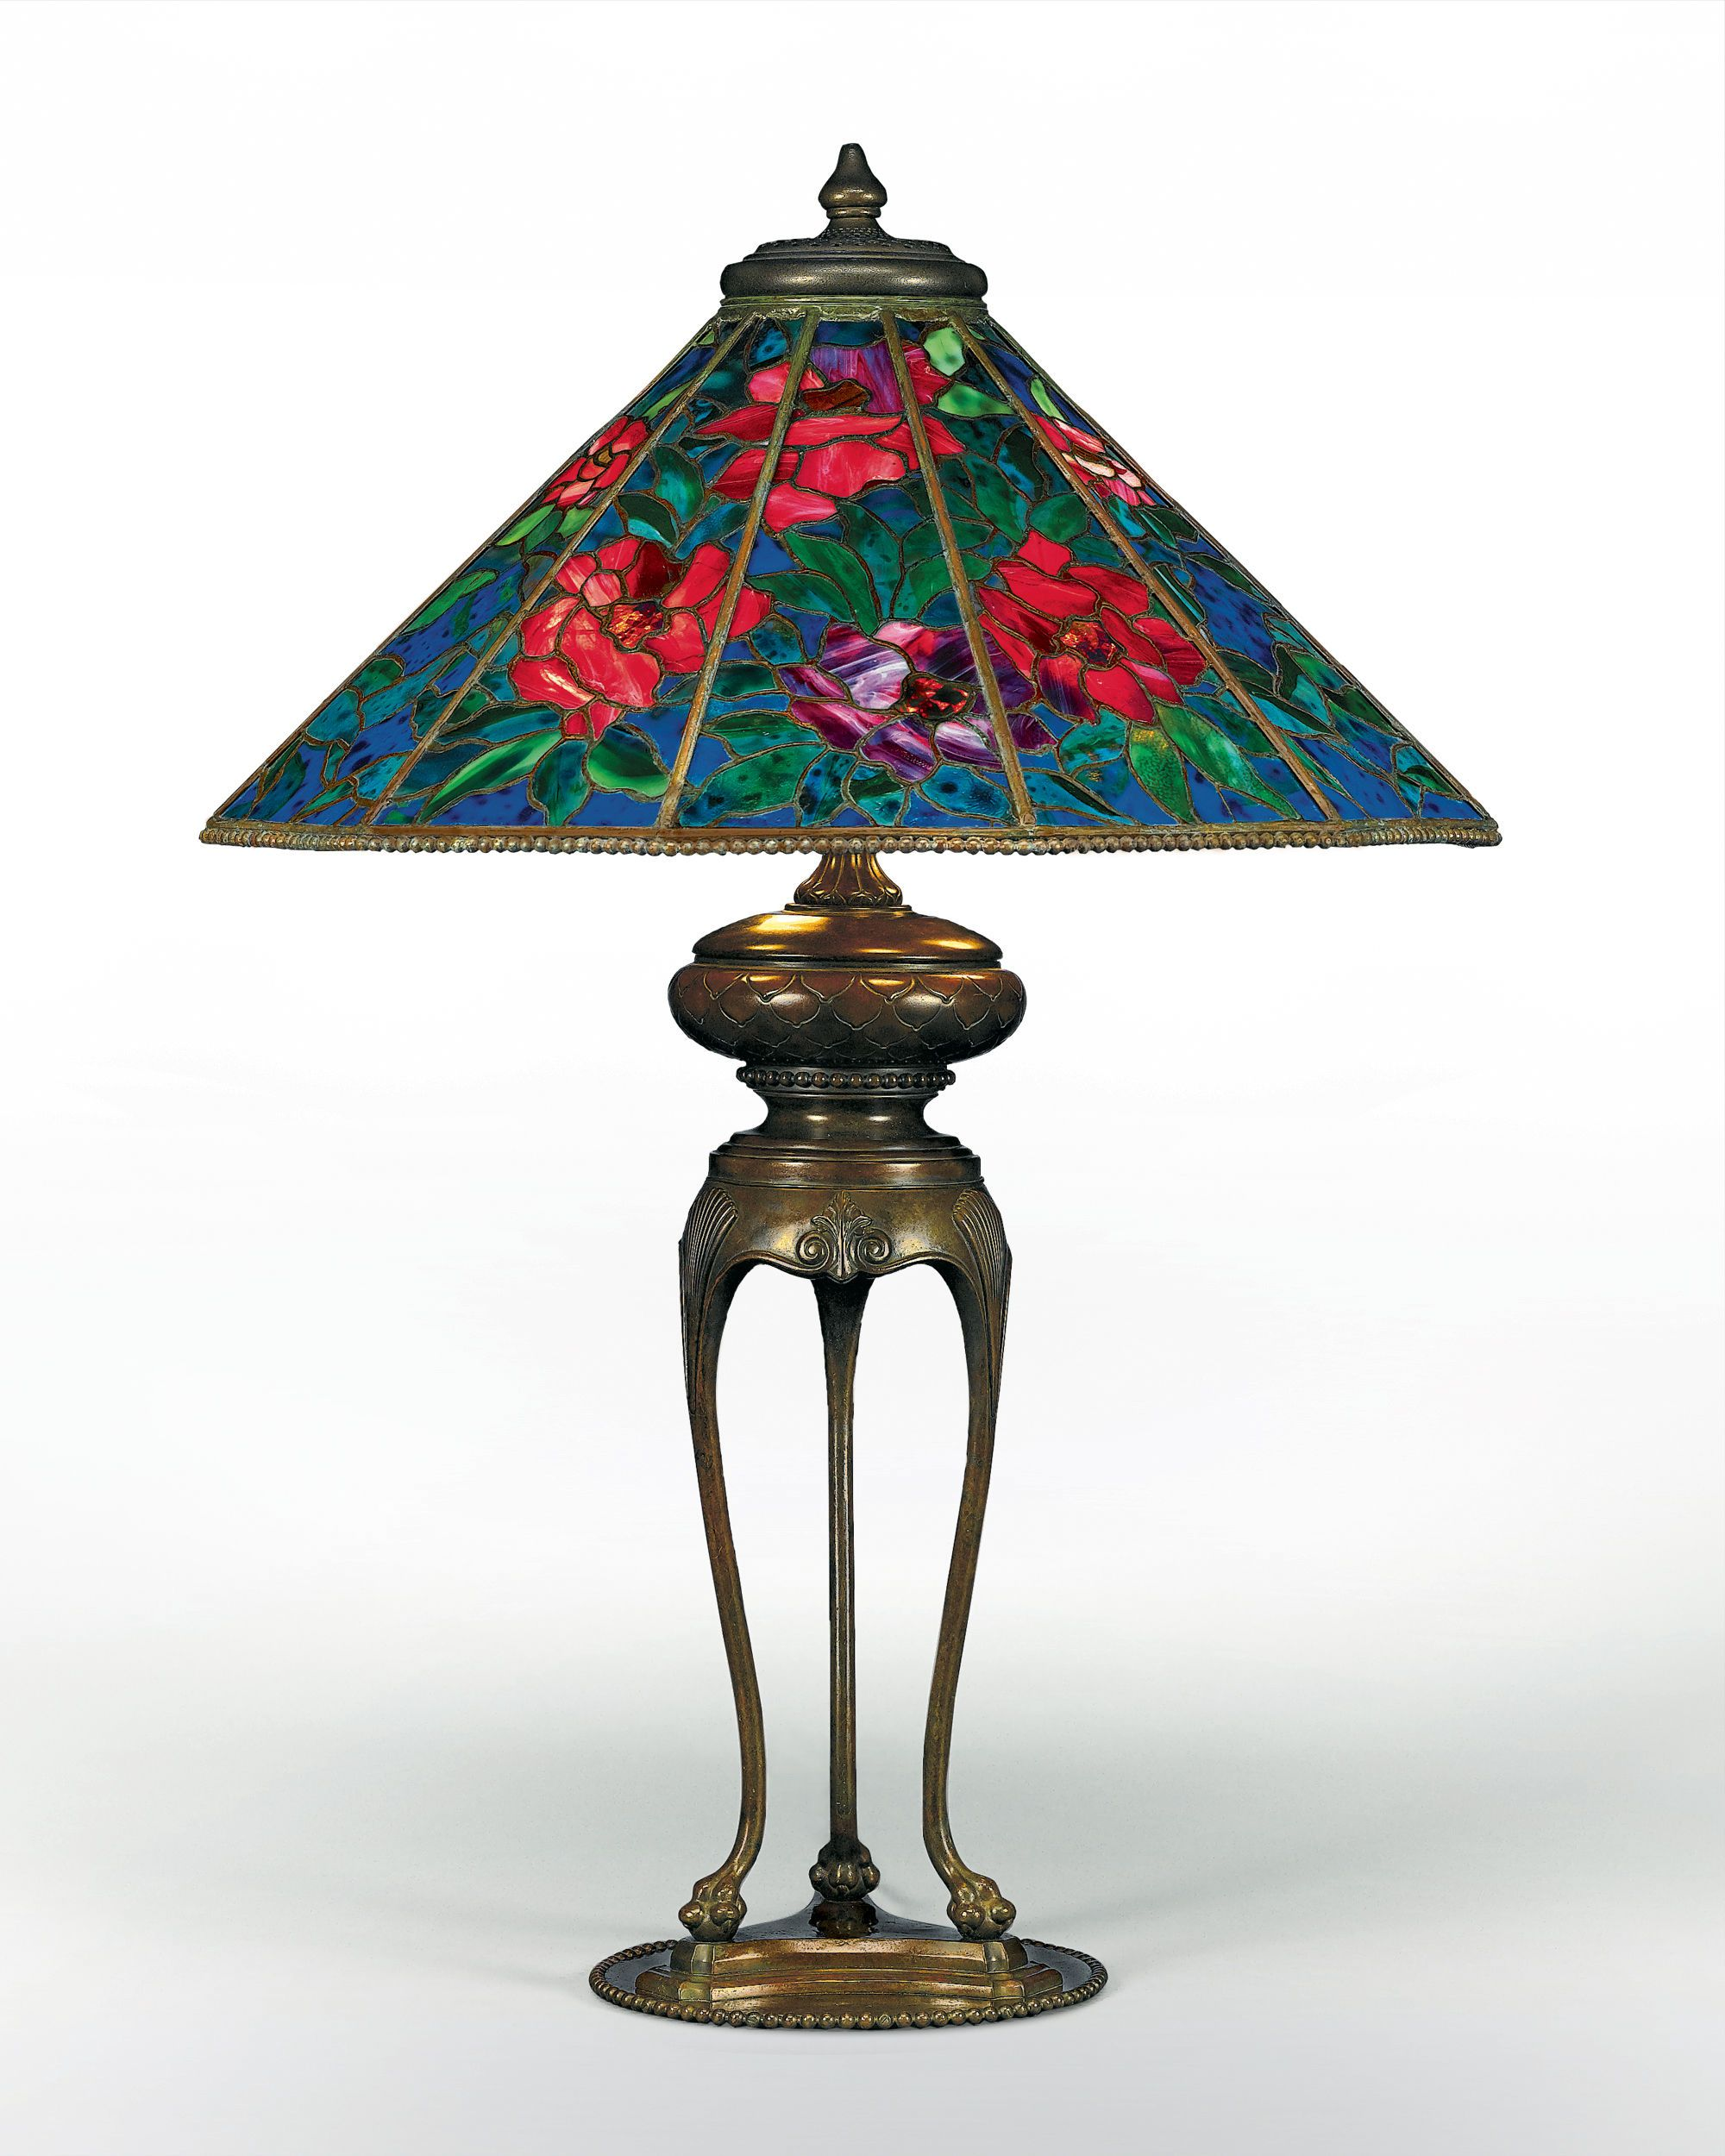 Tiffany Tischleuchte Landhaus Stil Rose Design 2 Flammig Tiffany Studios Peony Table Lamp Painted Windows Lamps